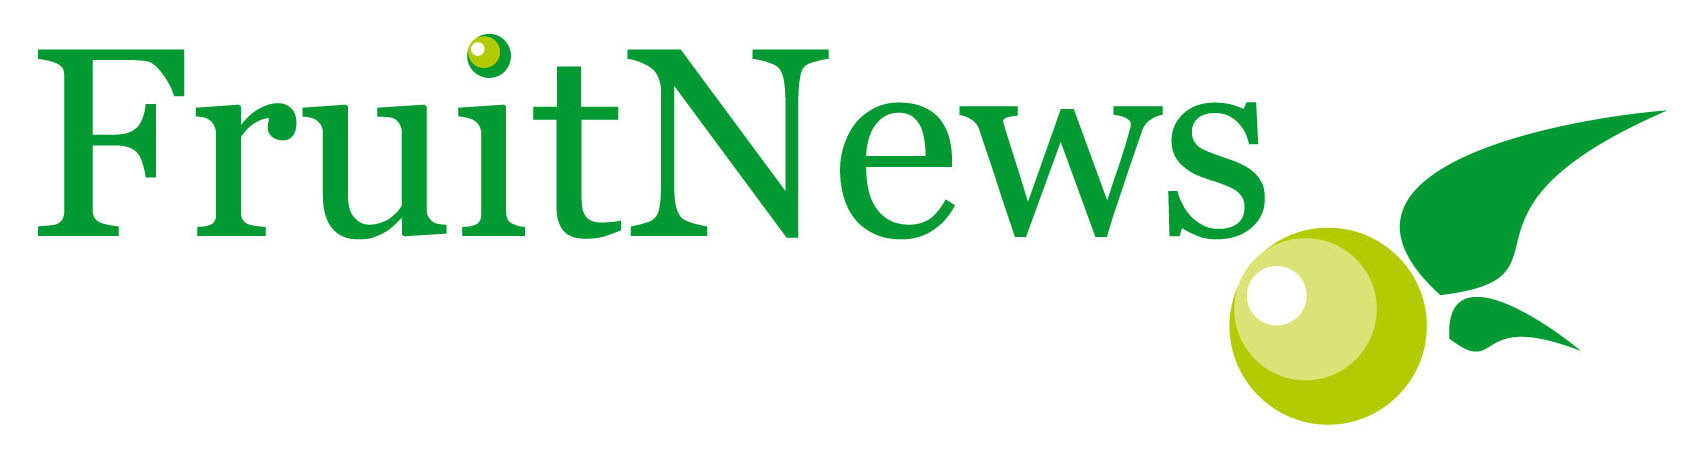 Fruitnews_logo no text